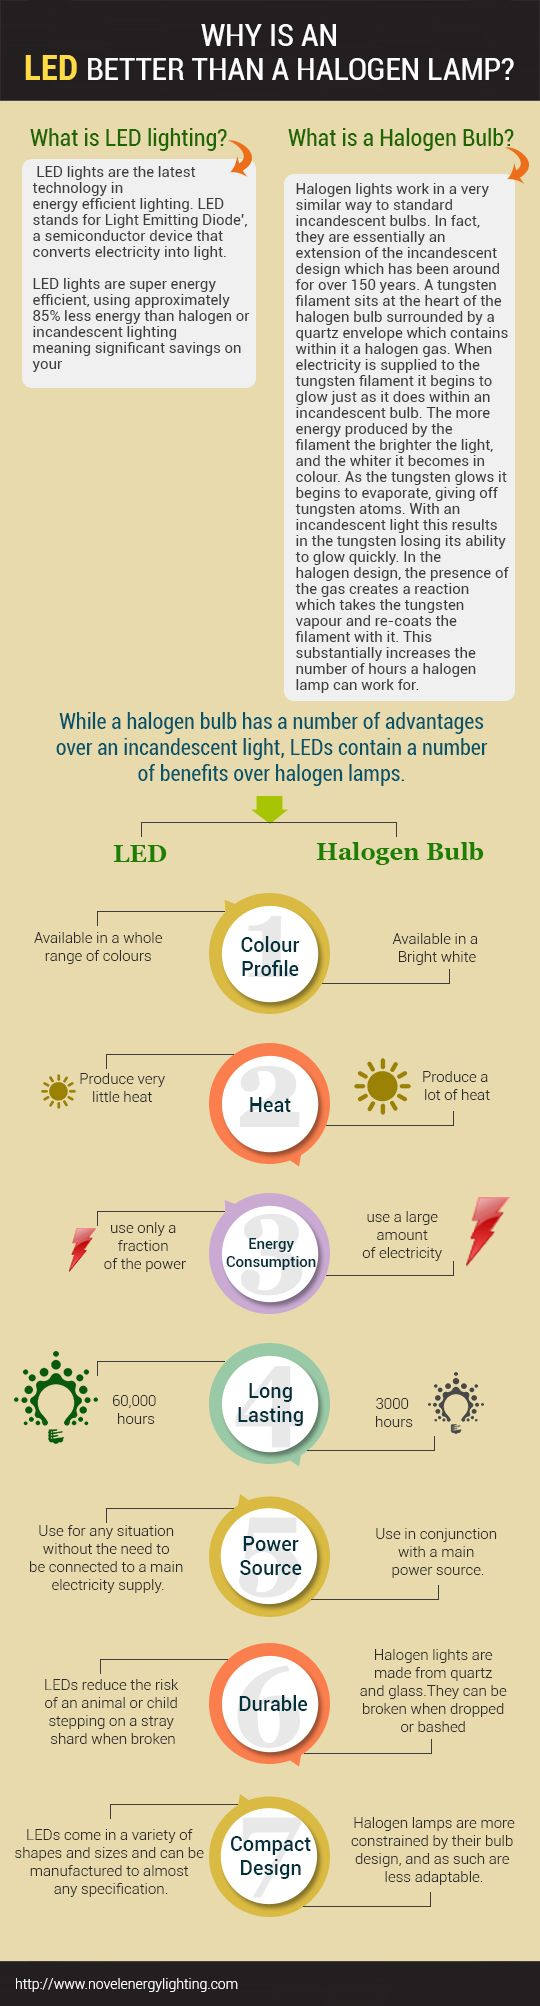 Why is an LED Better Than a Halogen Lamp?